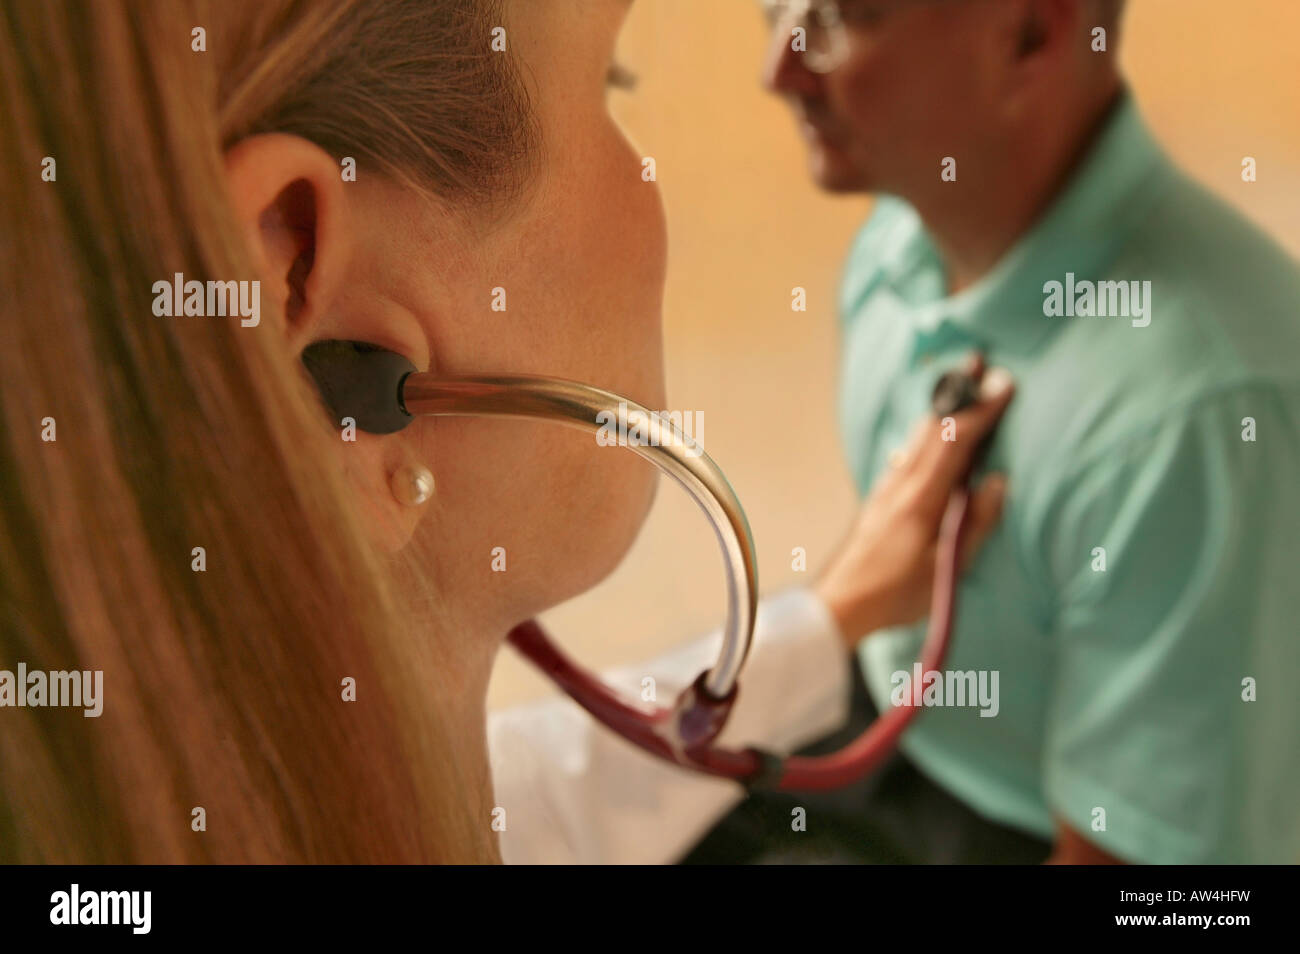 A female doctor uses a stethoscope to listen to a male patients heart. - Stock Image